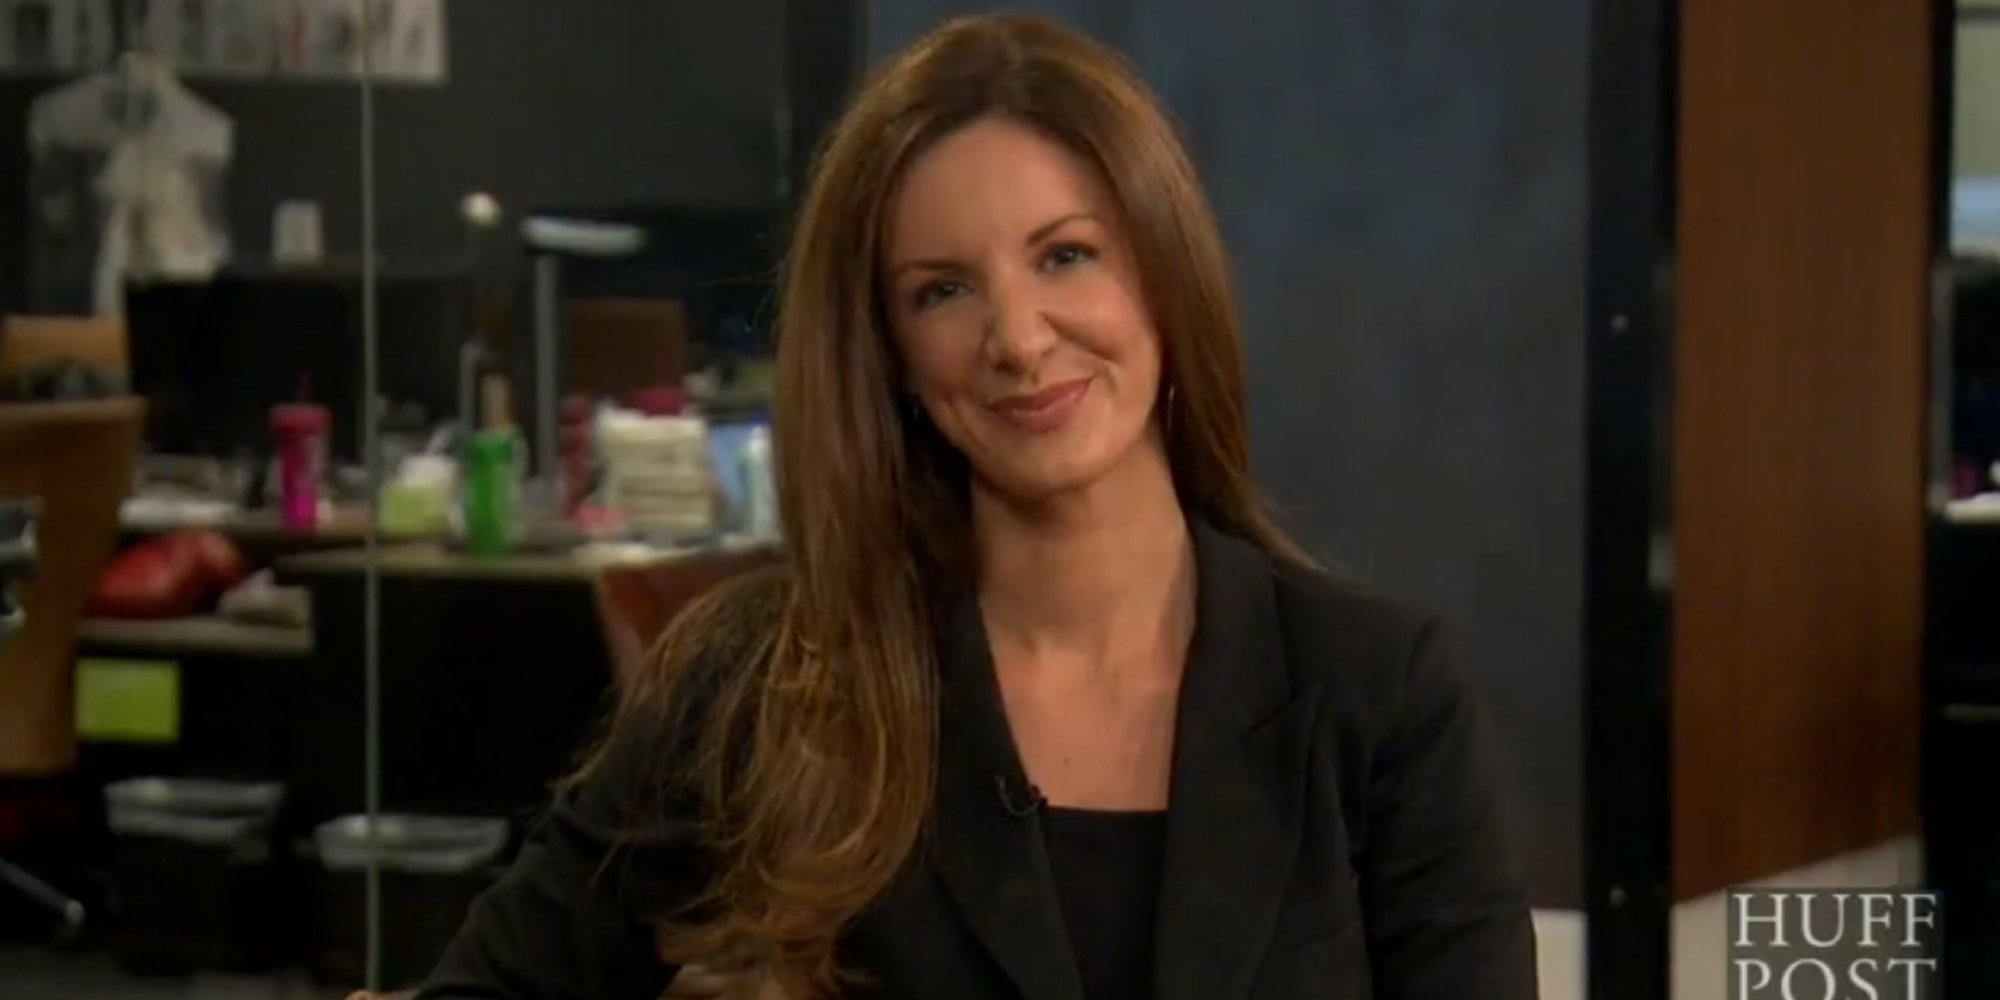 Kat Cole Hooters Girl Turned Business Whiz Transforms